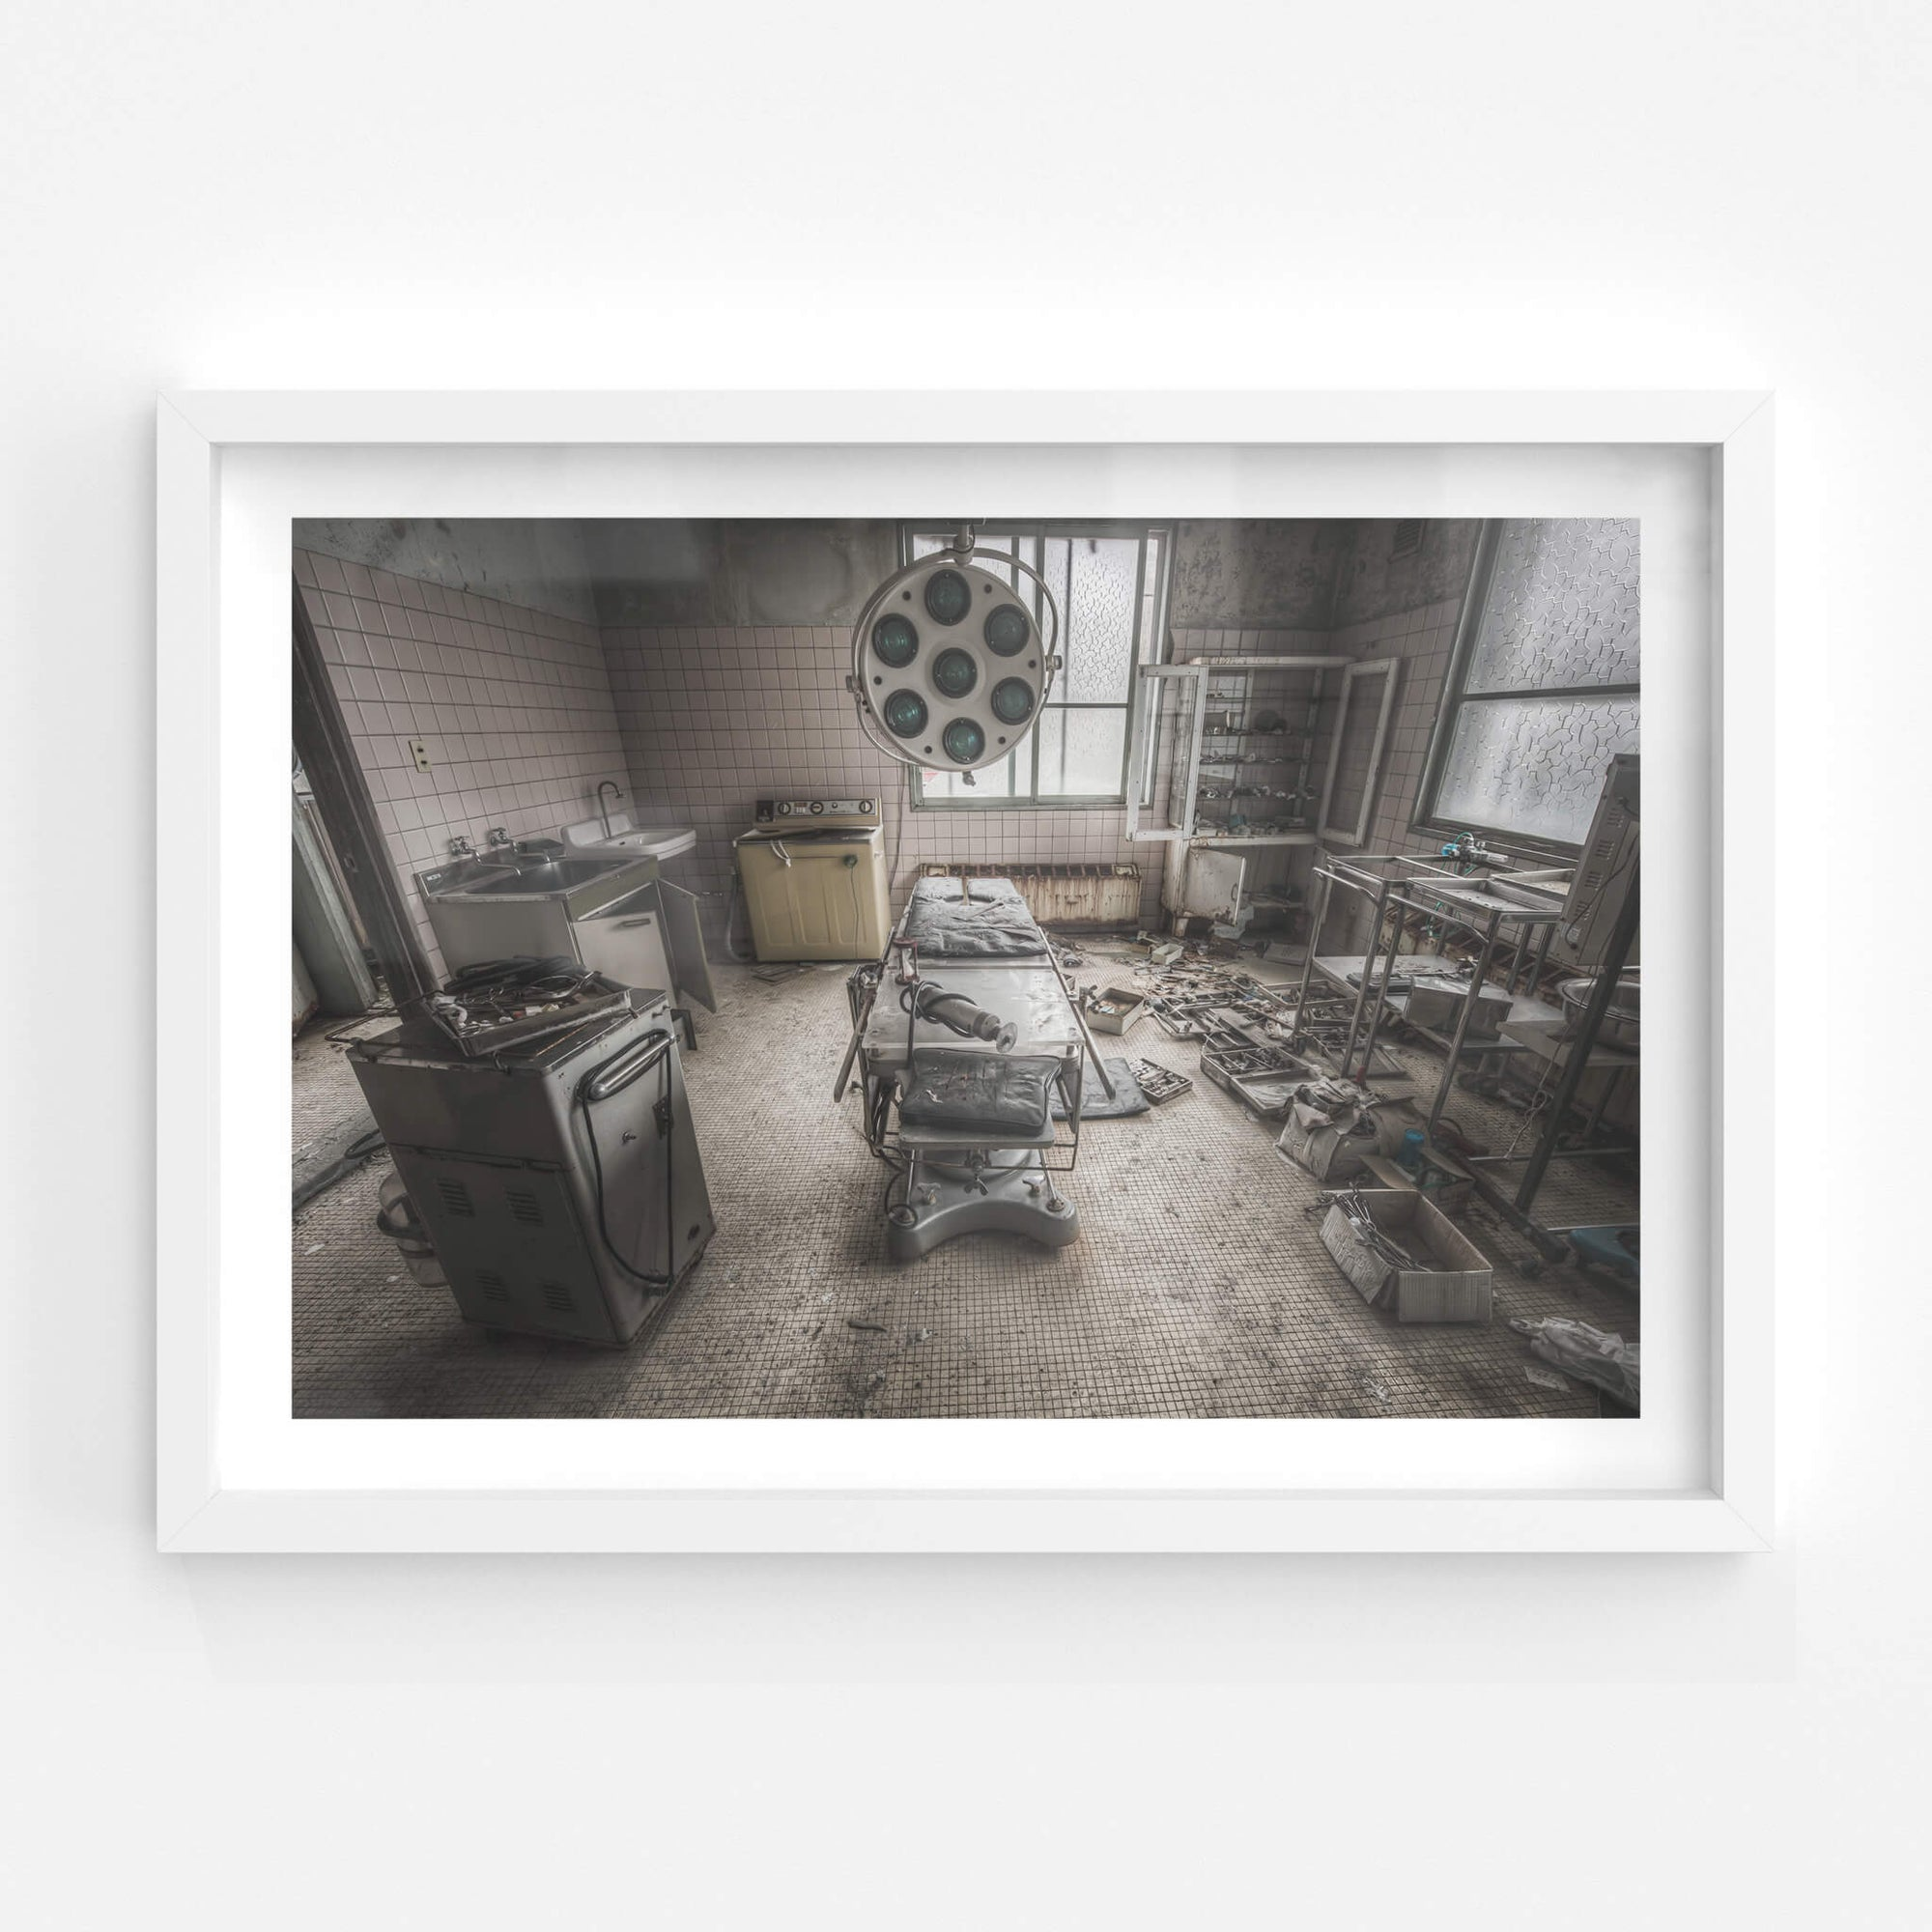 Operating Table | Kuwashima Hospital Fine Art Print - Lost Collective Shop